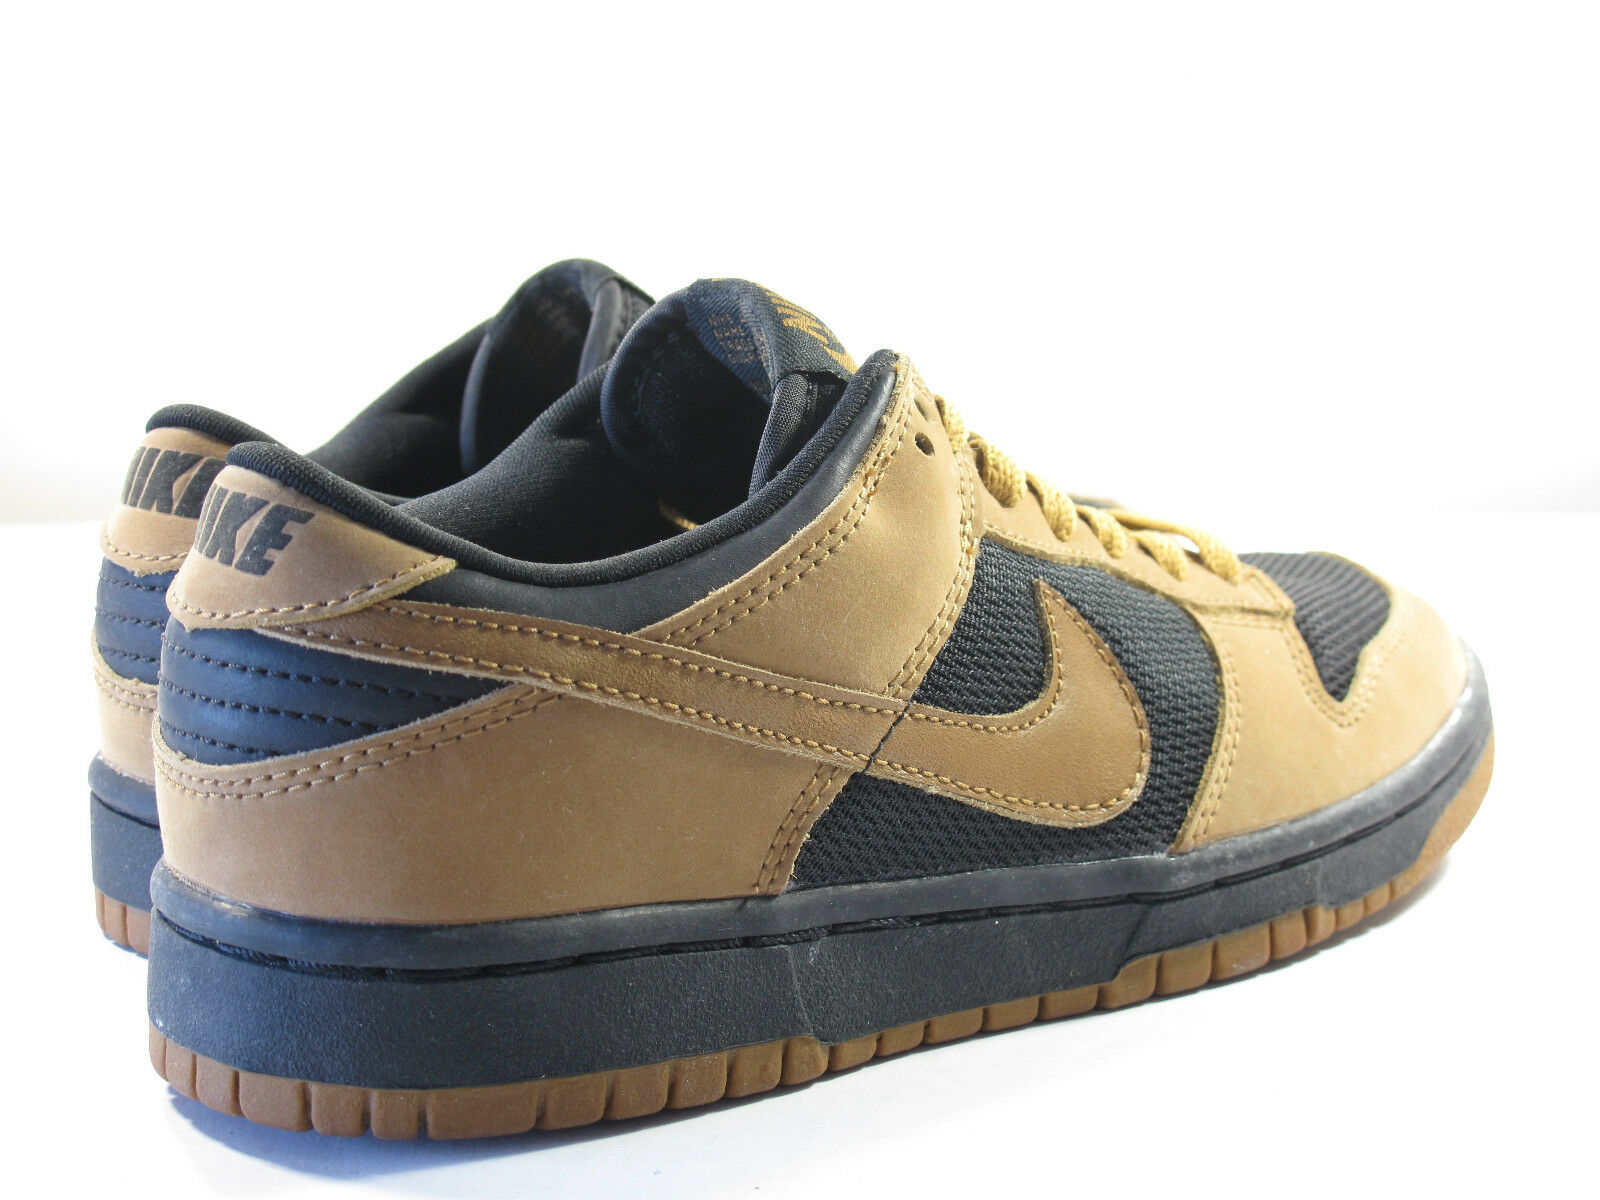 DS NIKE 2003 DUNK LOW MAPLE 8.5 SAFARI ATMOS SUPREME WHAT THE LONDON LUCKY SB B